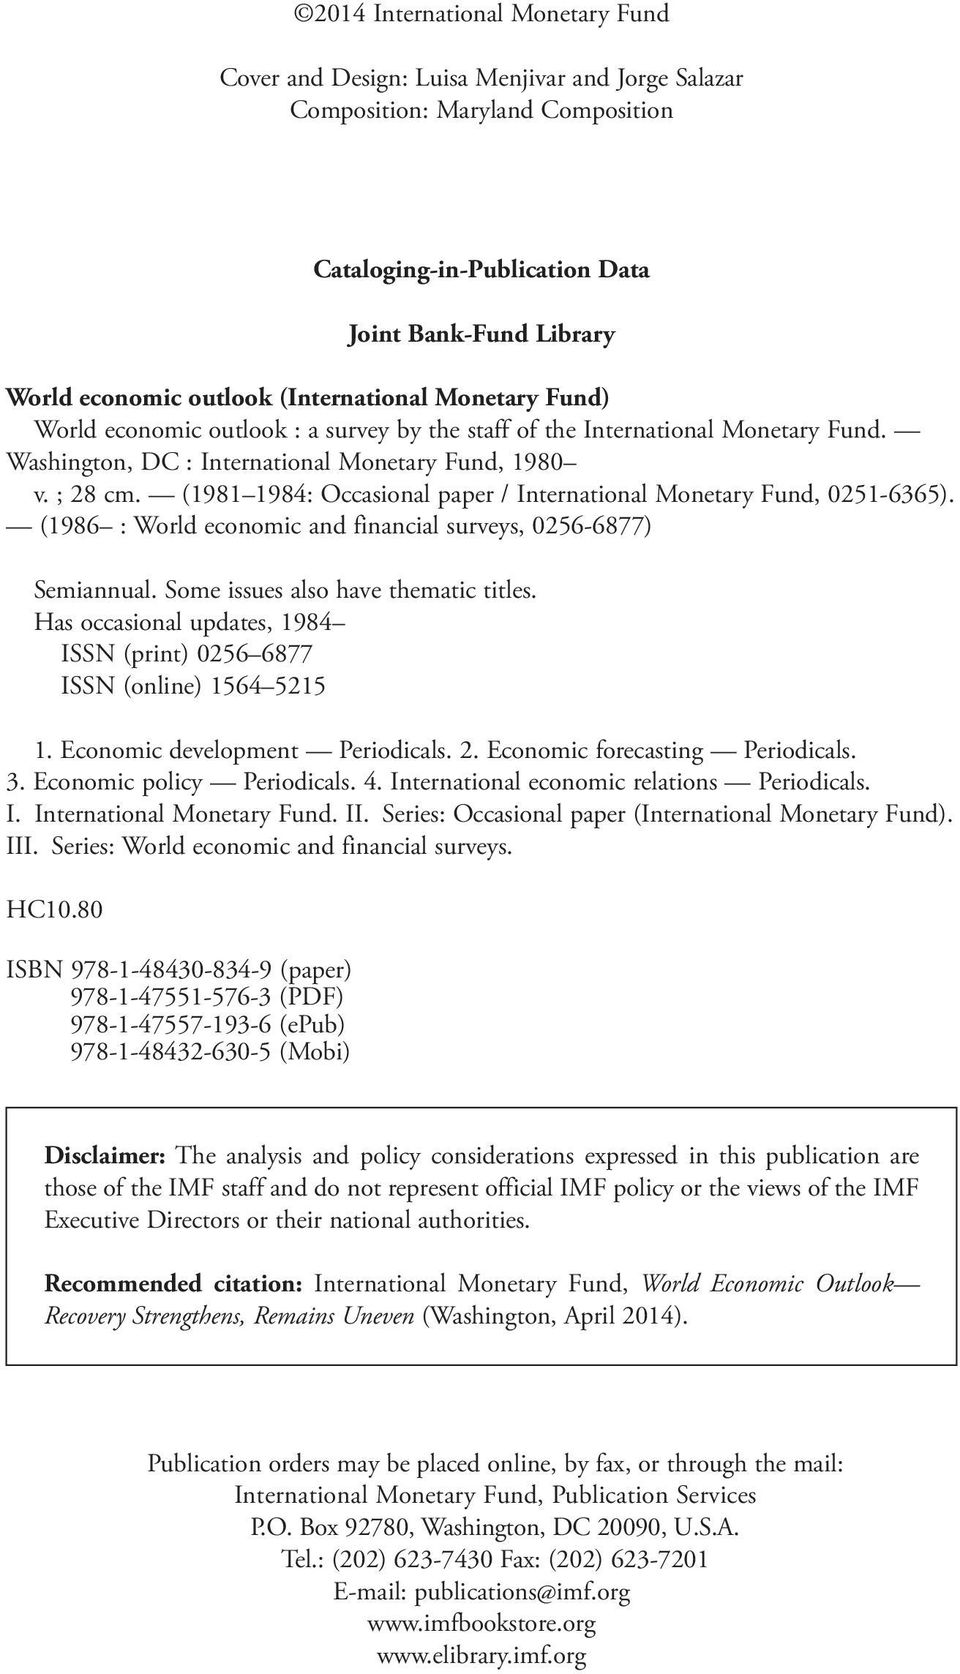 (1981 198: Occasional paper / International Monetary Fund, 51-6365). (1986 : World economic and financial surveys, 56-6877) Semiannual. Some issues also have thematic titles.